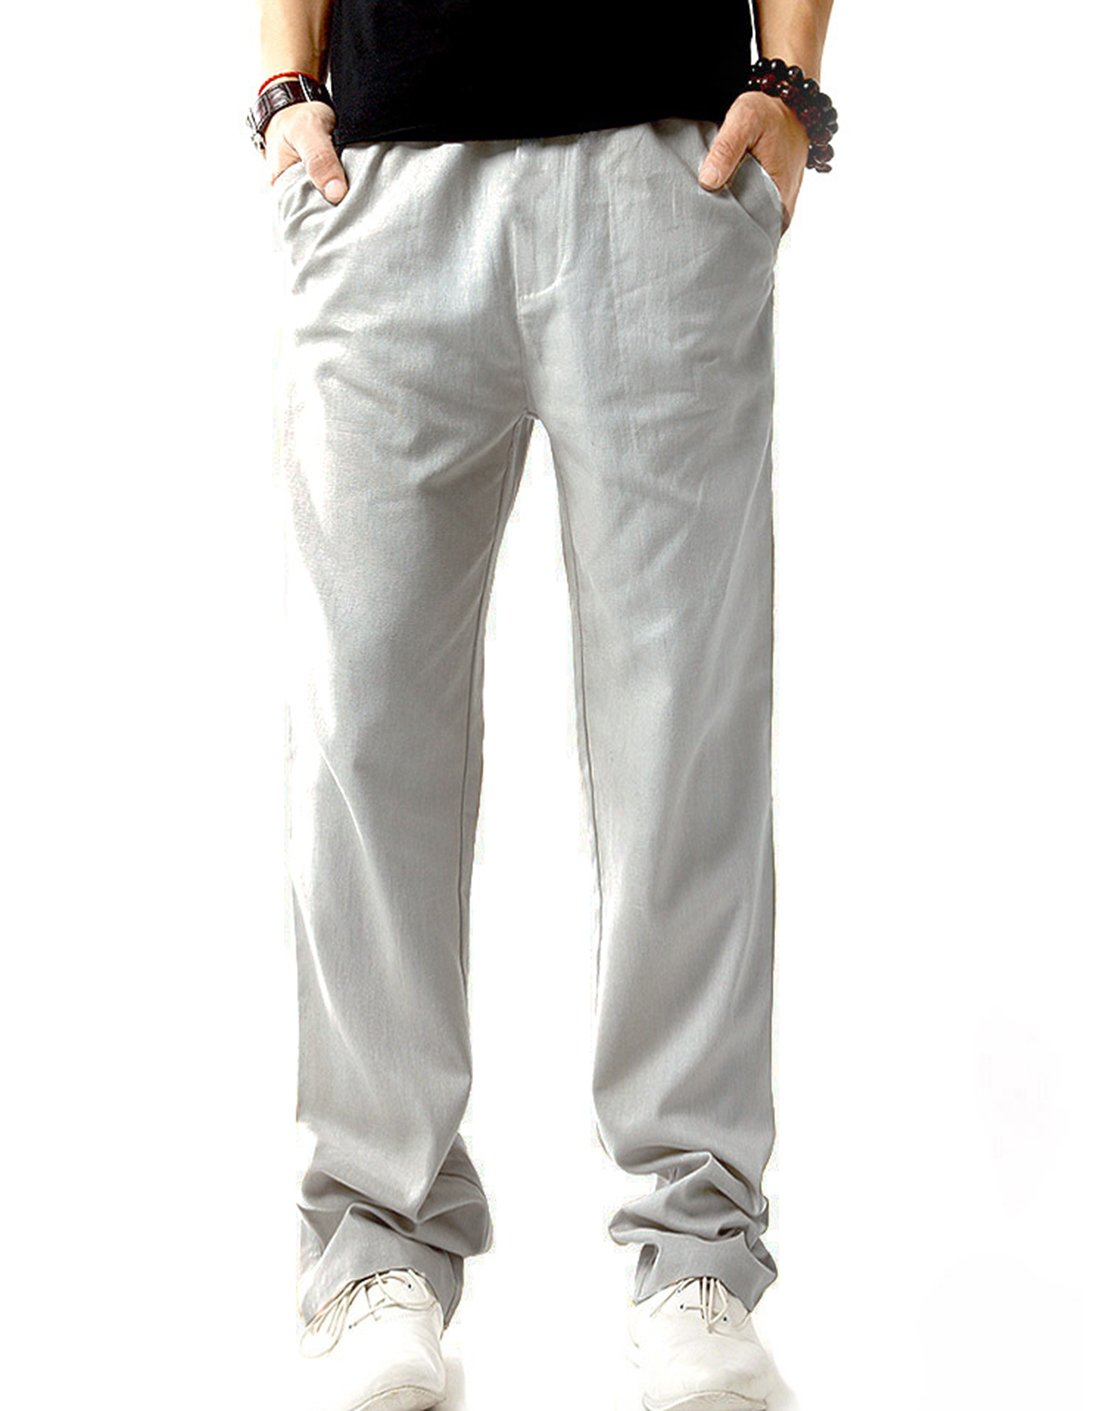 SIR7 Men's Linen Casual Lightweight Drawstrintg Elastic Waist Summer Beach Pants Light Grey 2L by SIR7 (Image #2)